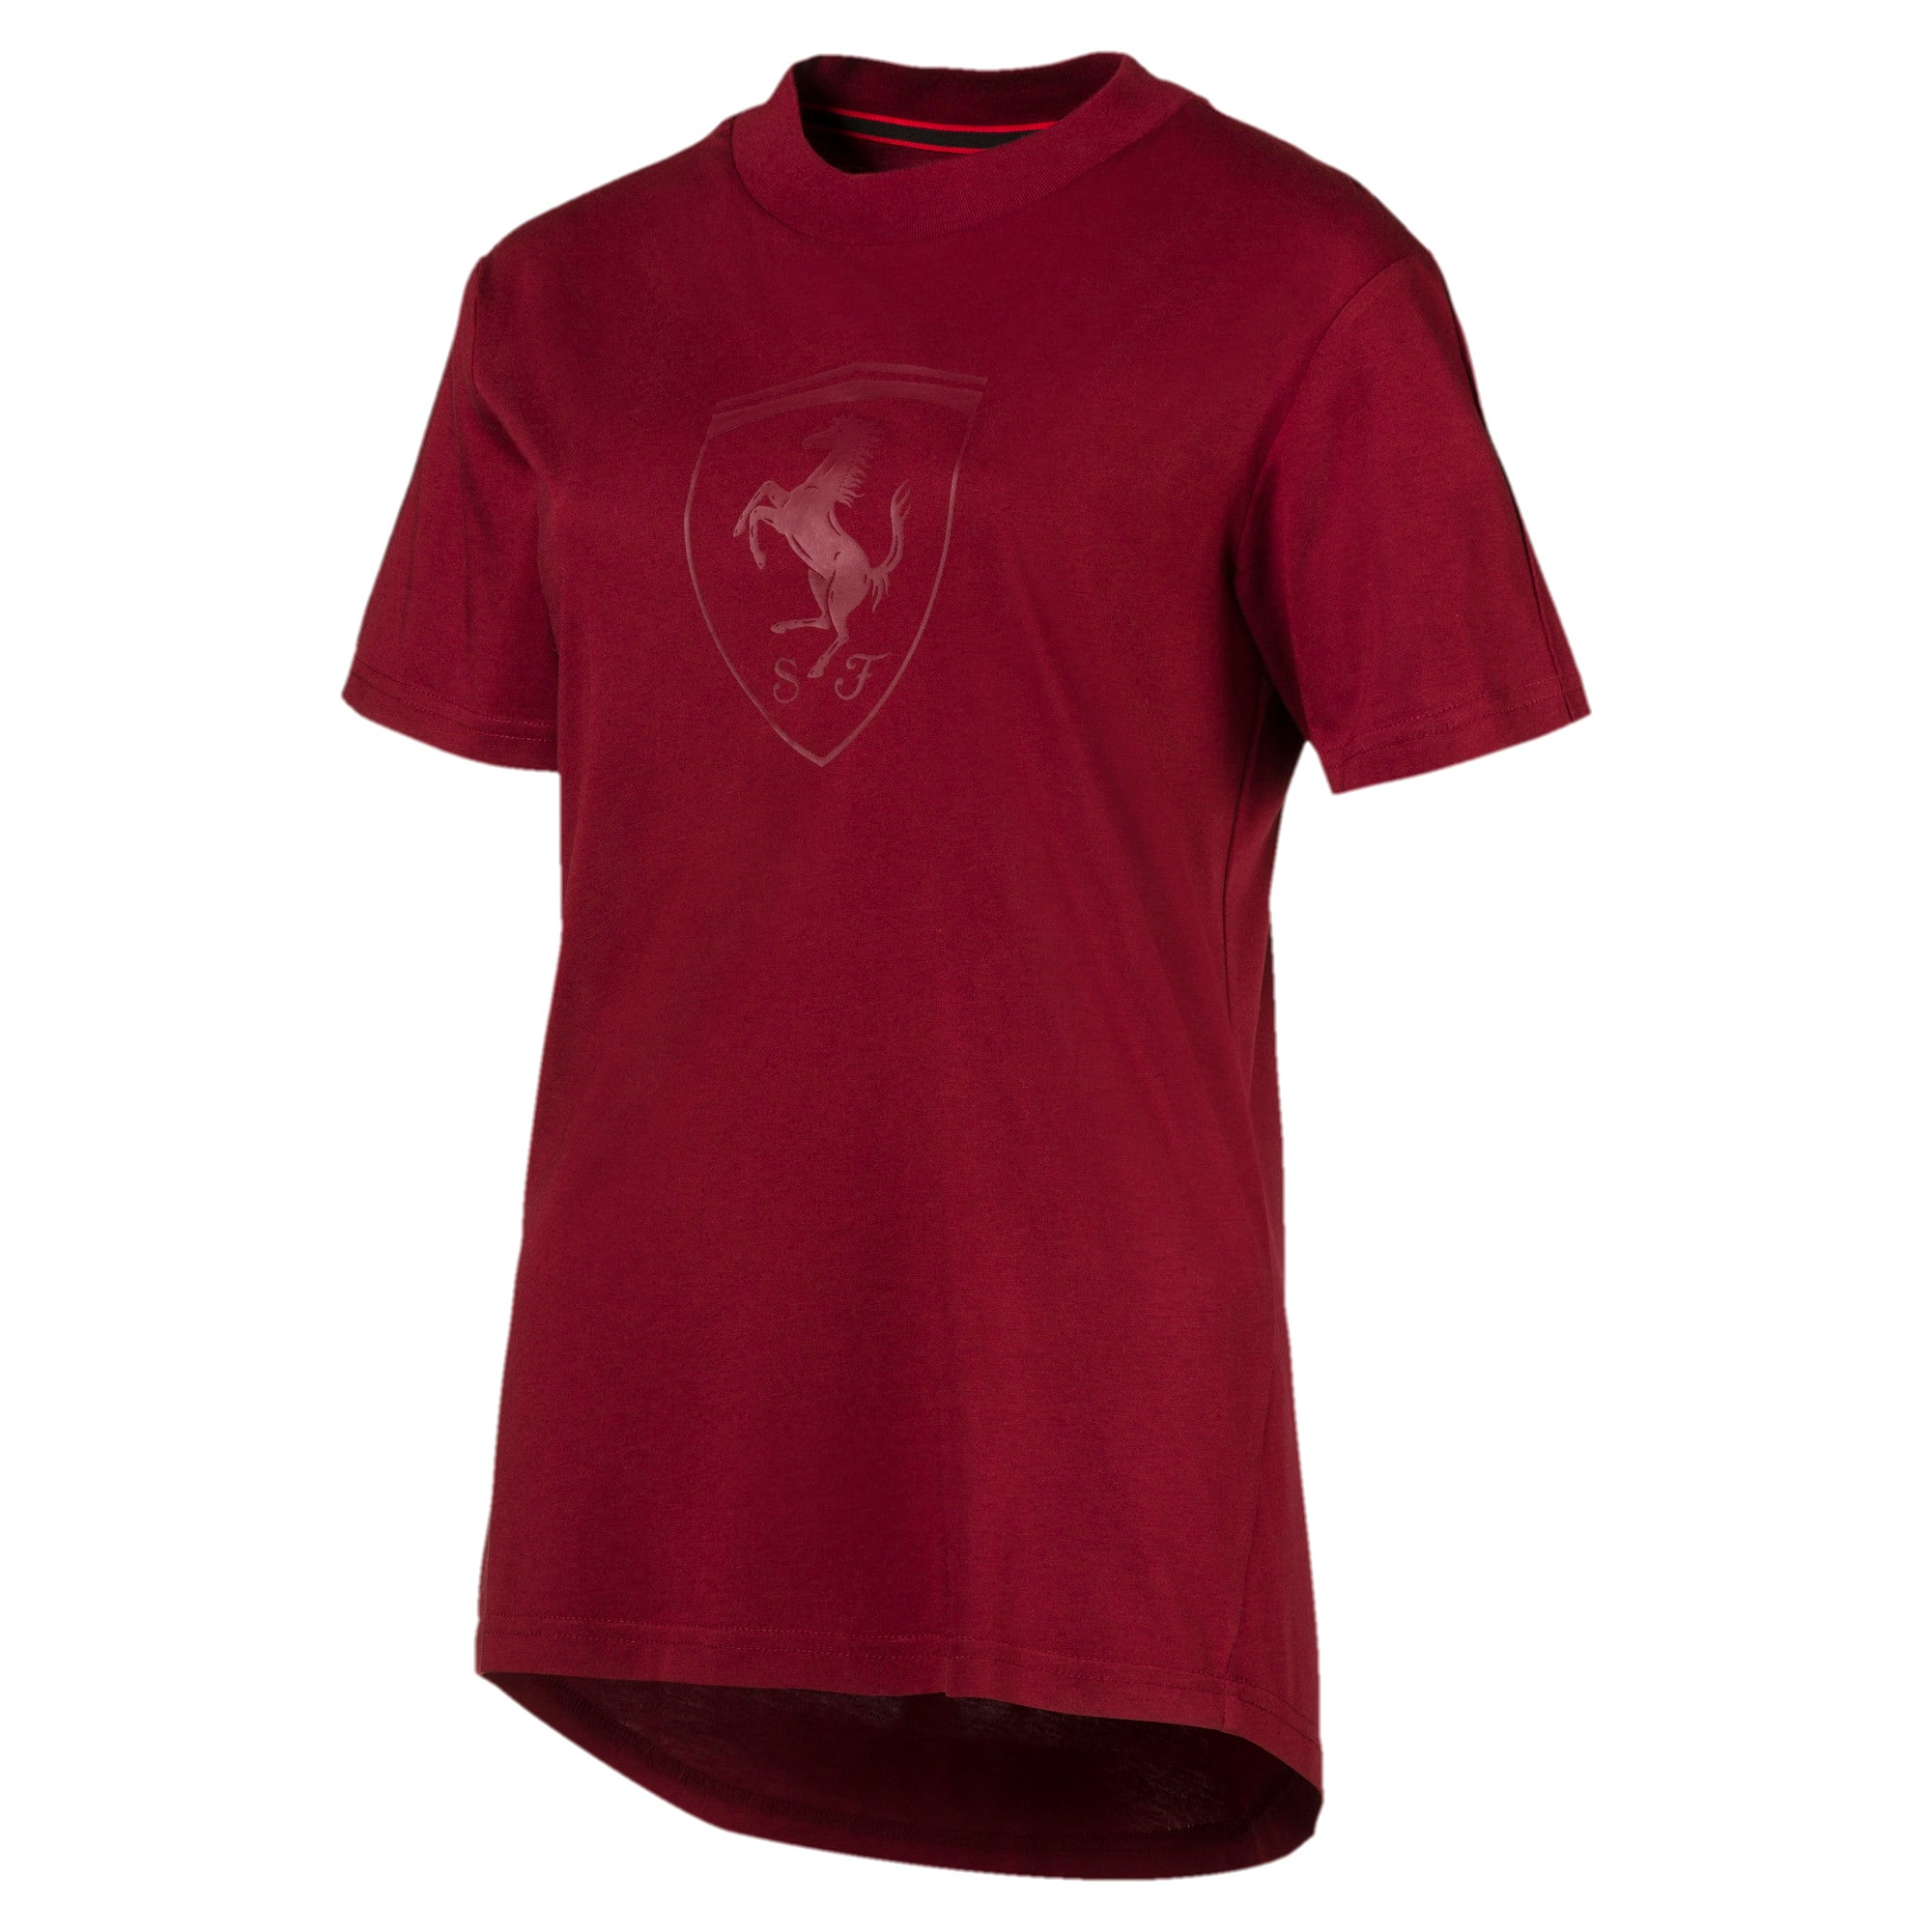 Thumbnail 1 of Scuderia Ferrari Lifestyle Women's Big Shield Tee, Pomegranate, medium